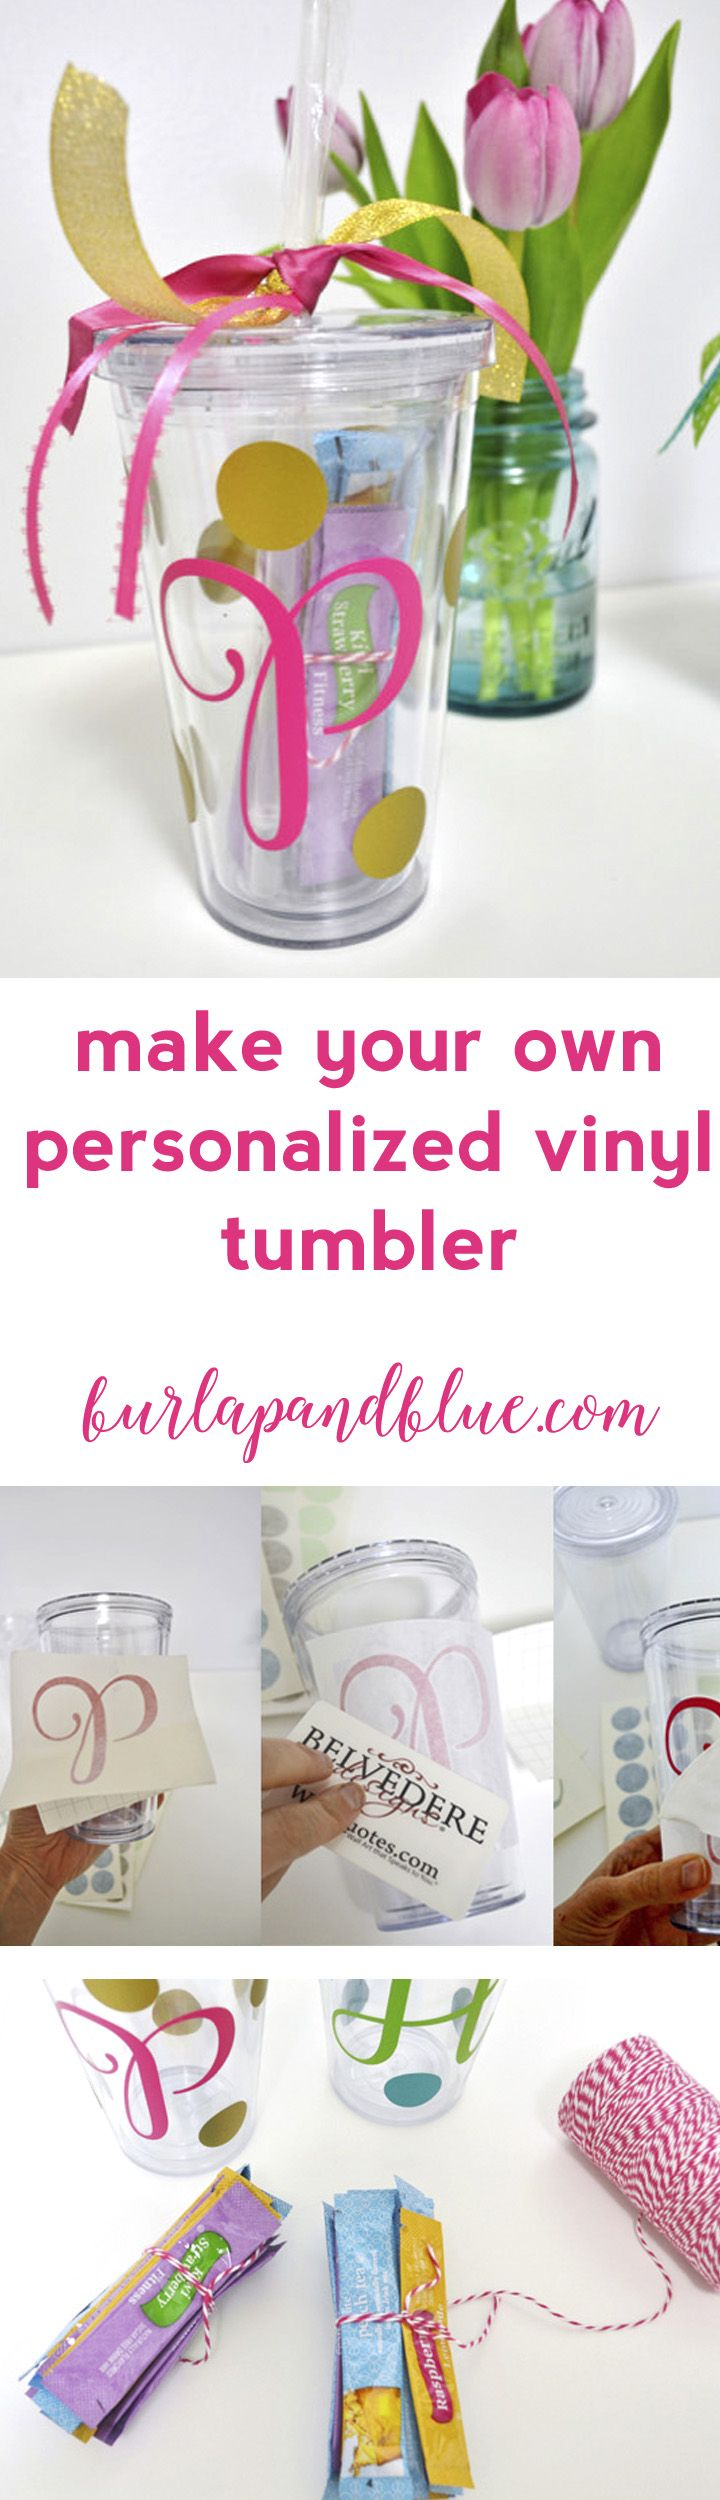 make your own personalized vinyl tumbler! easy craft and perfect for gifts (especially teacher gifts!)